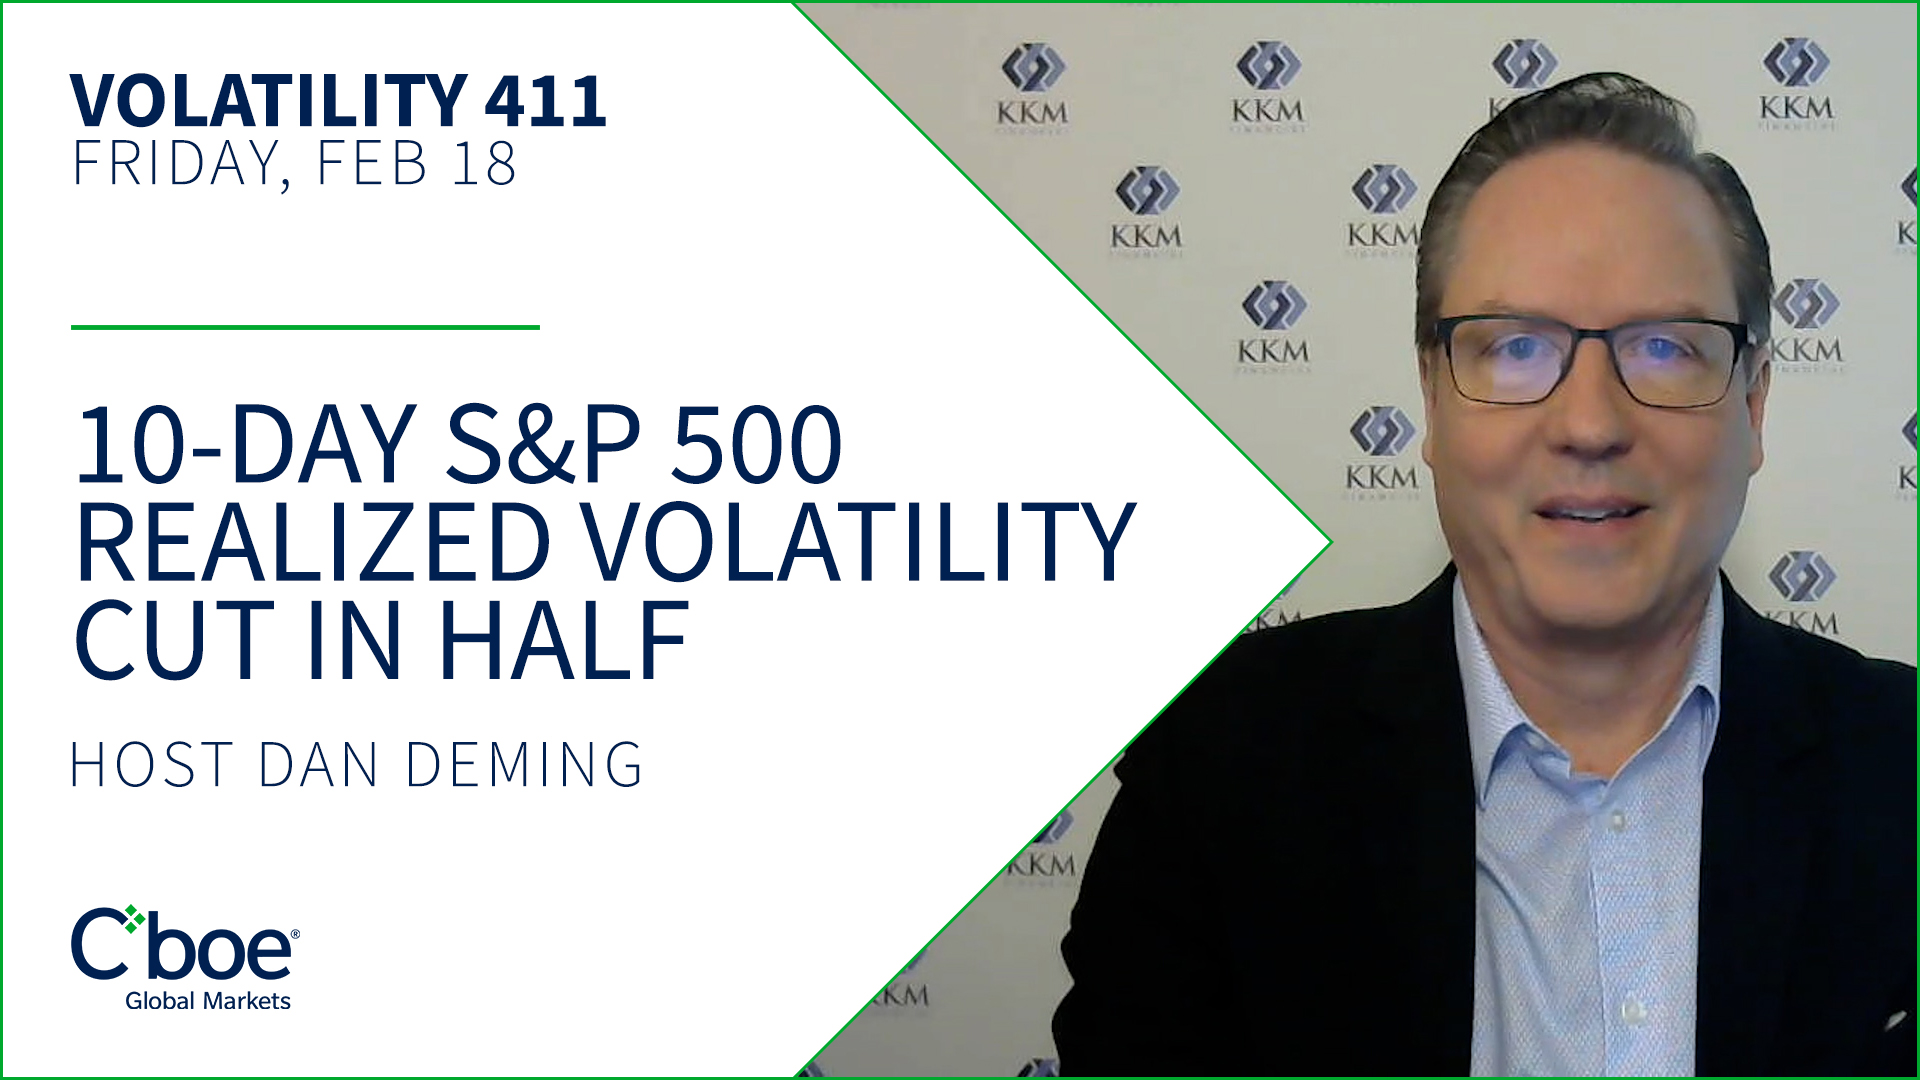 10-Day S&P 500 Index Realized Volatility Cut in Half Thumbnail